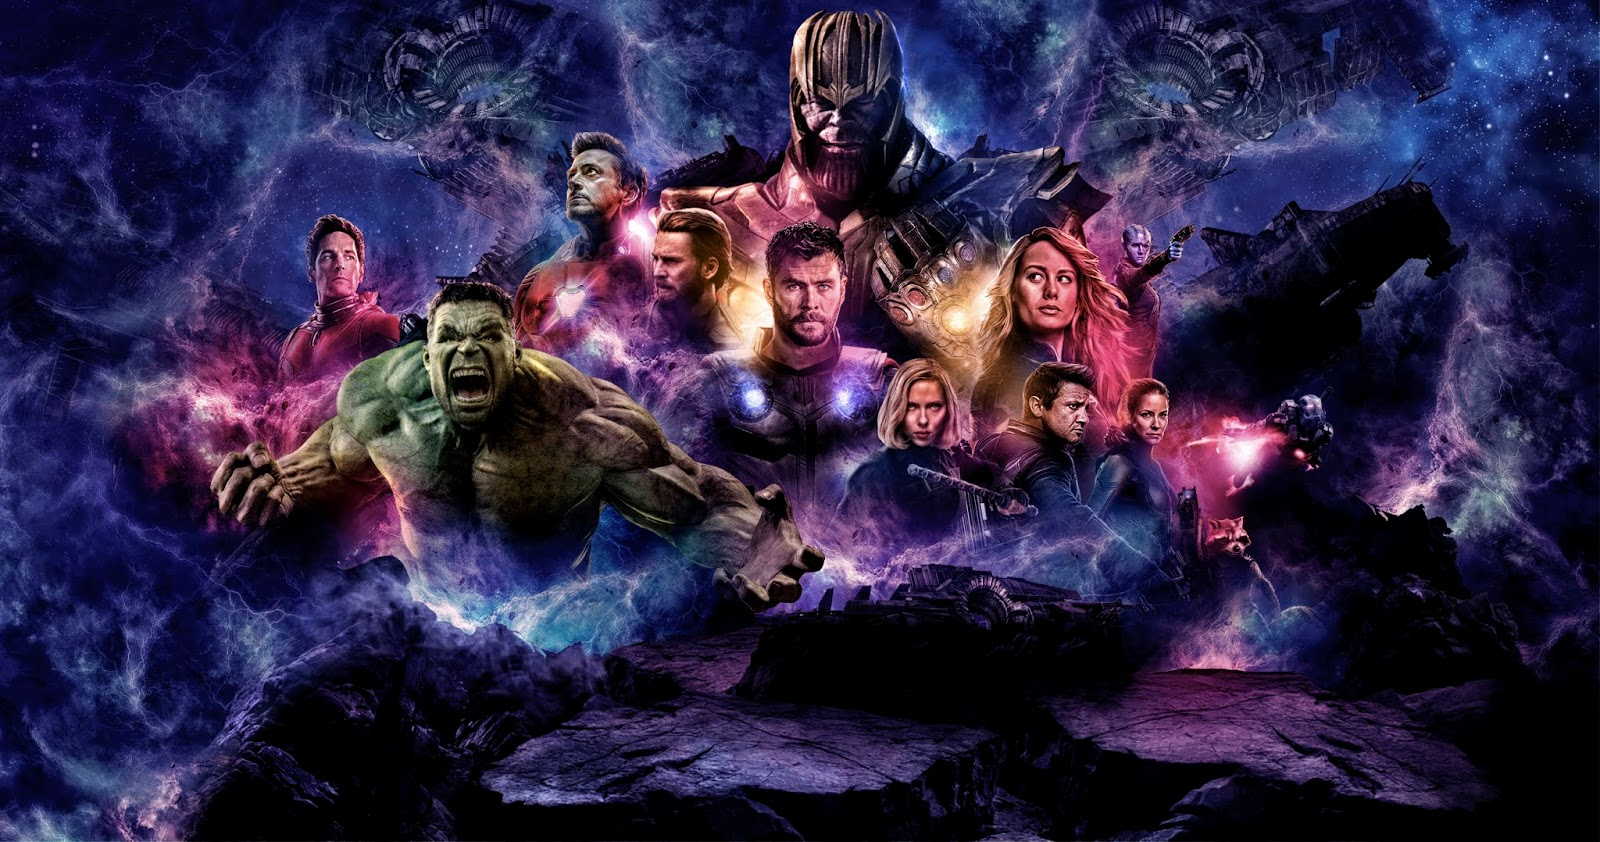 Avengers 4 End Game Hd Wallpapers In 4k Captain America Iron Man